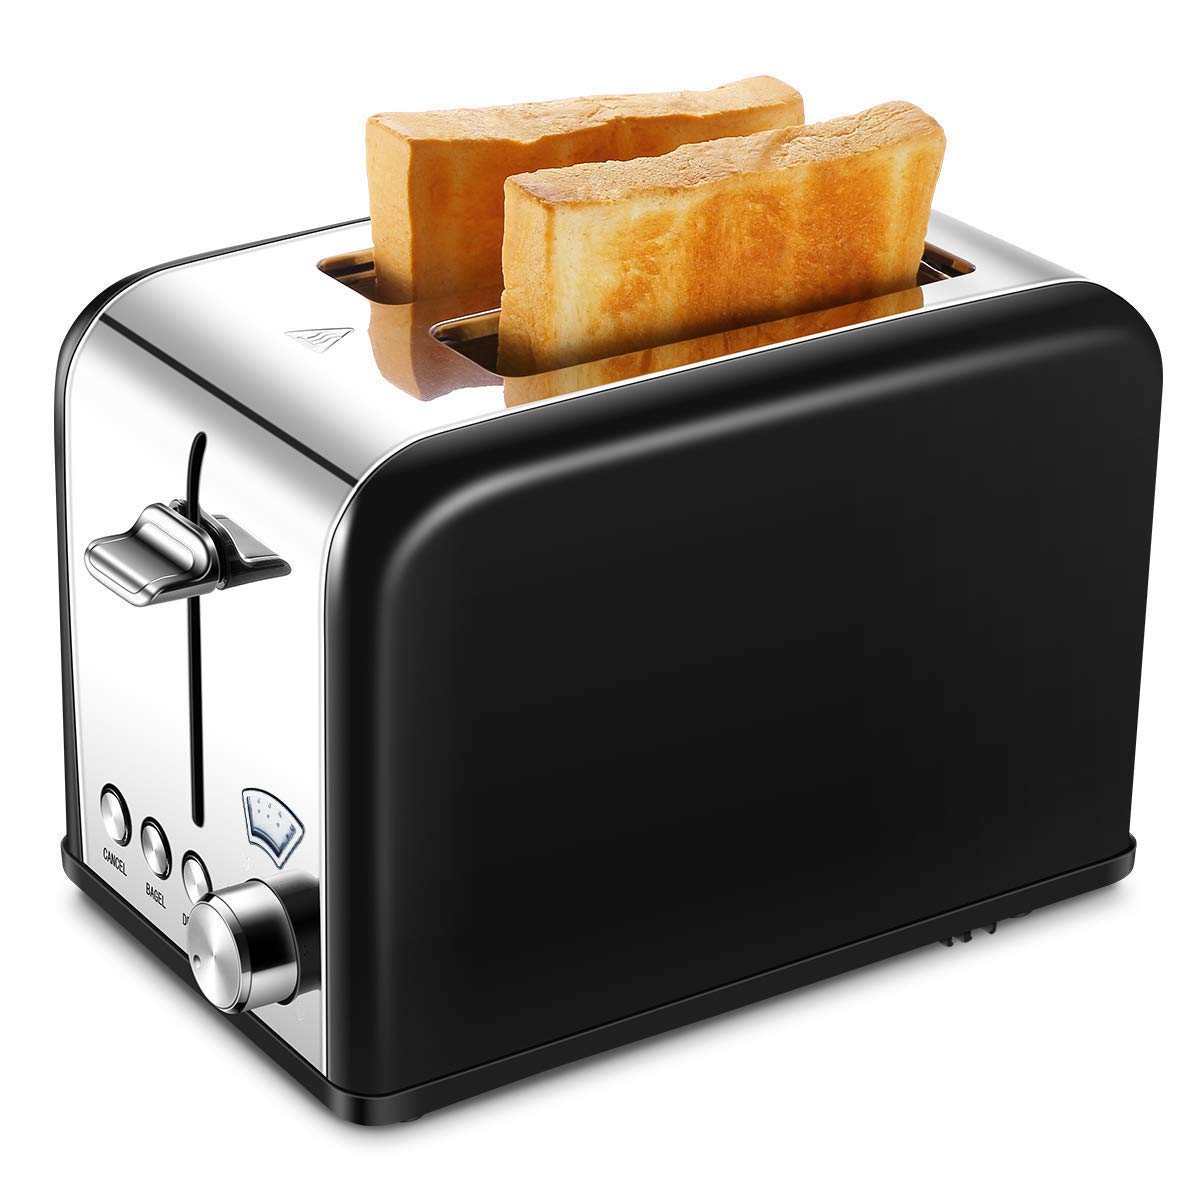 Nice looking toaster